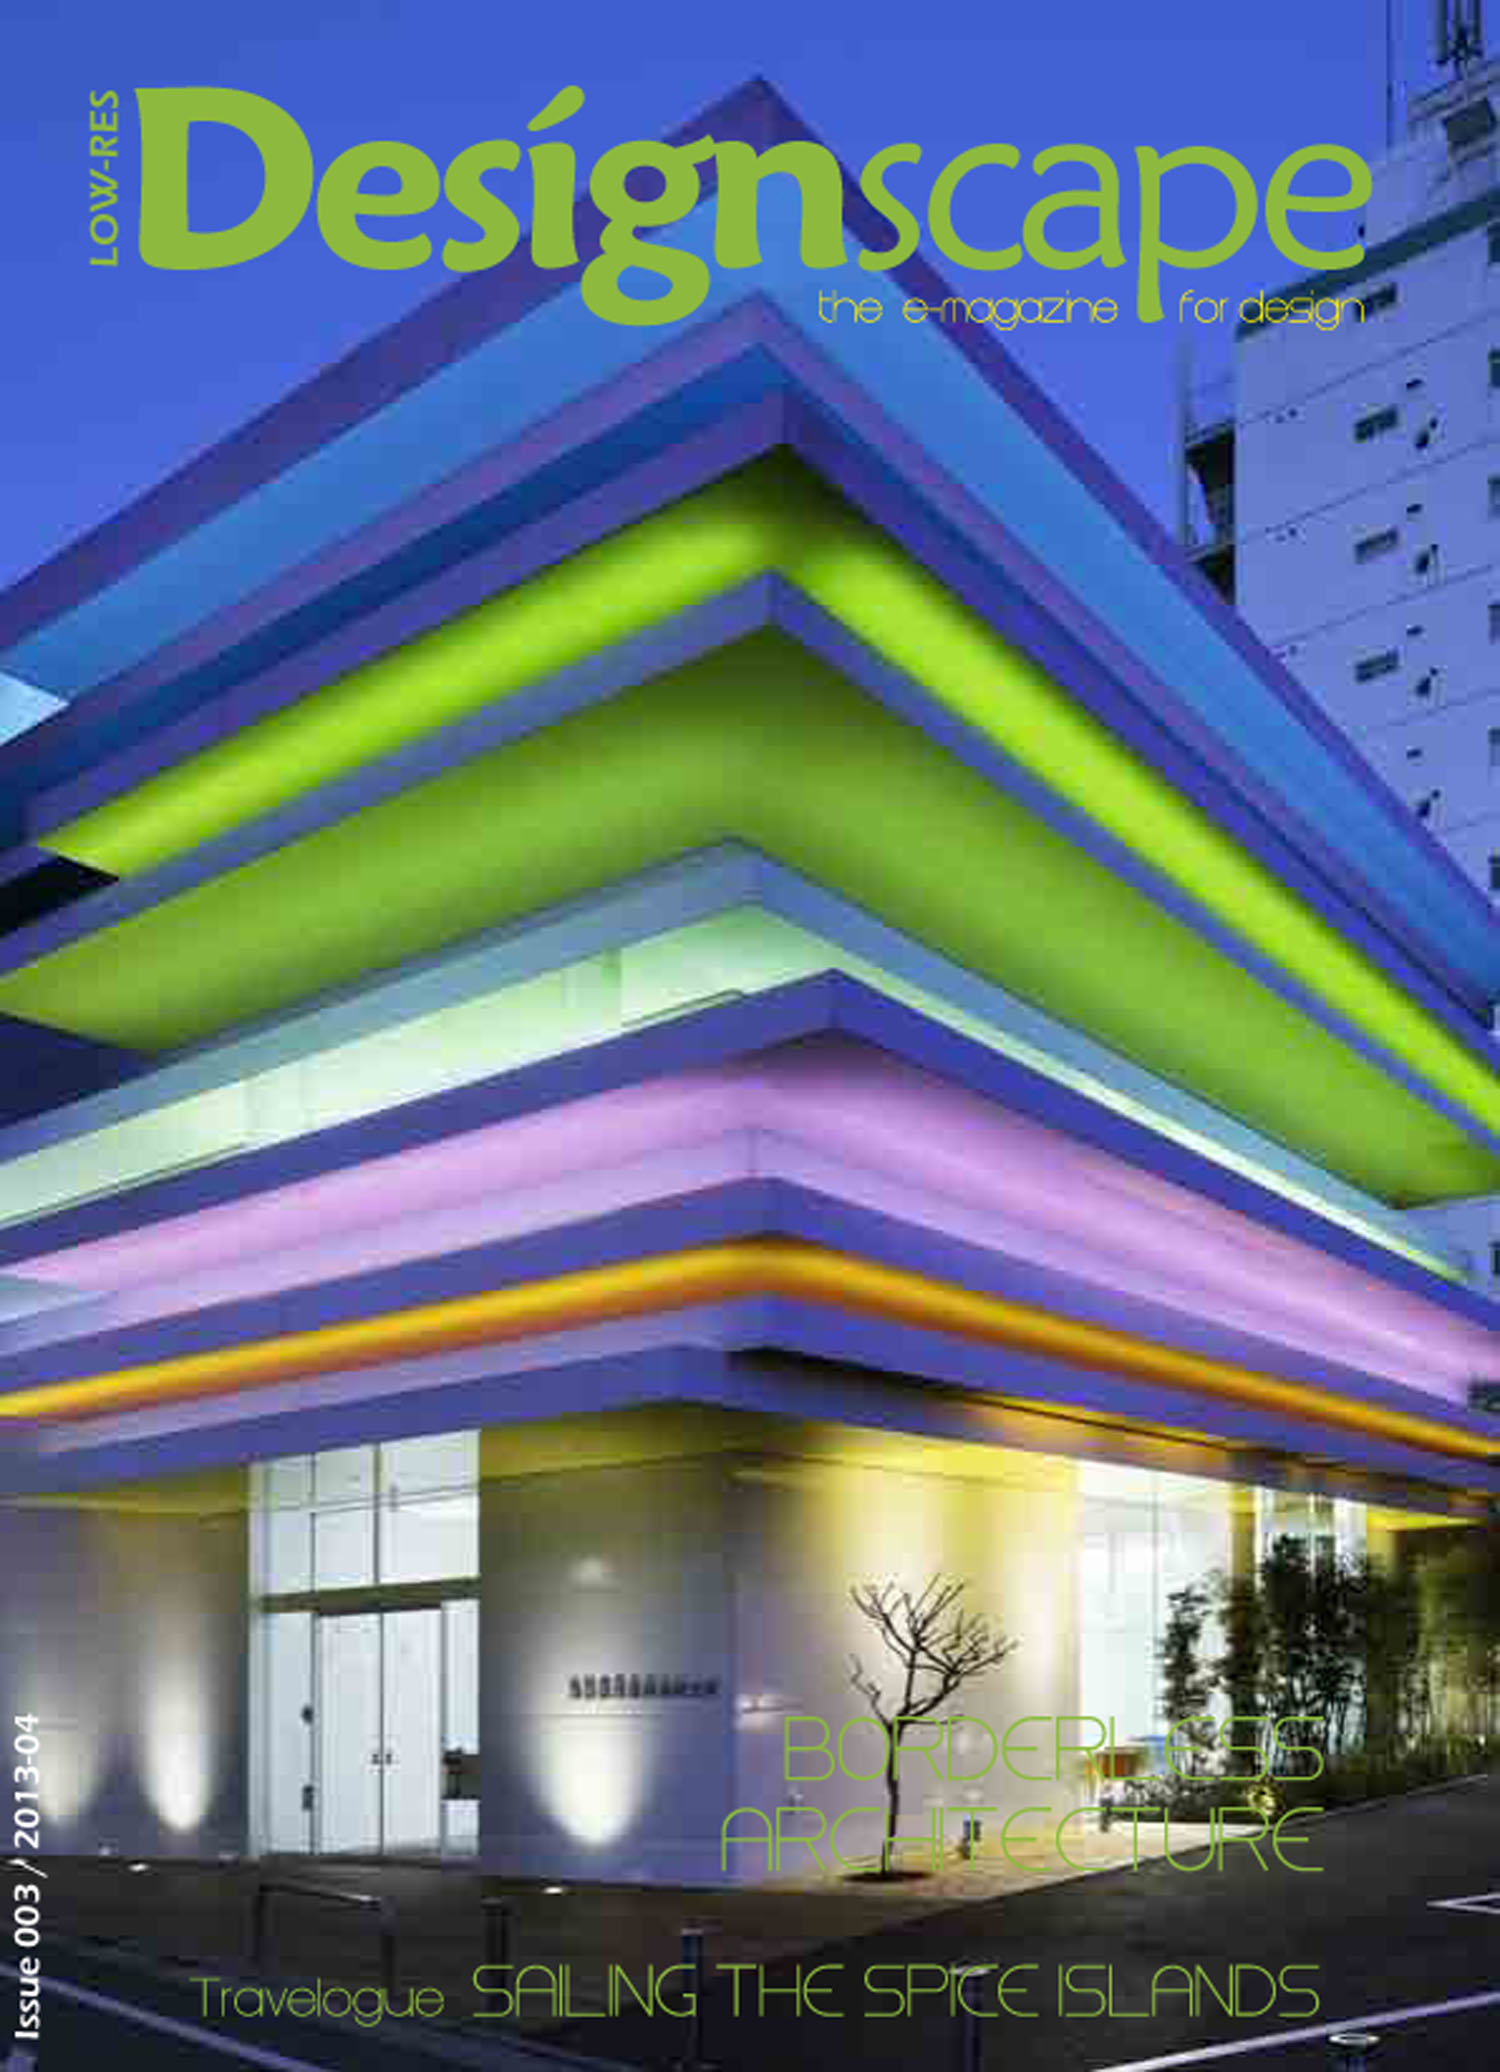 Sugamo Shinkin Bank / Shimura